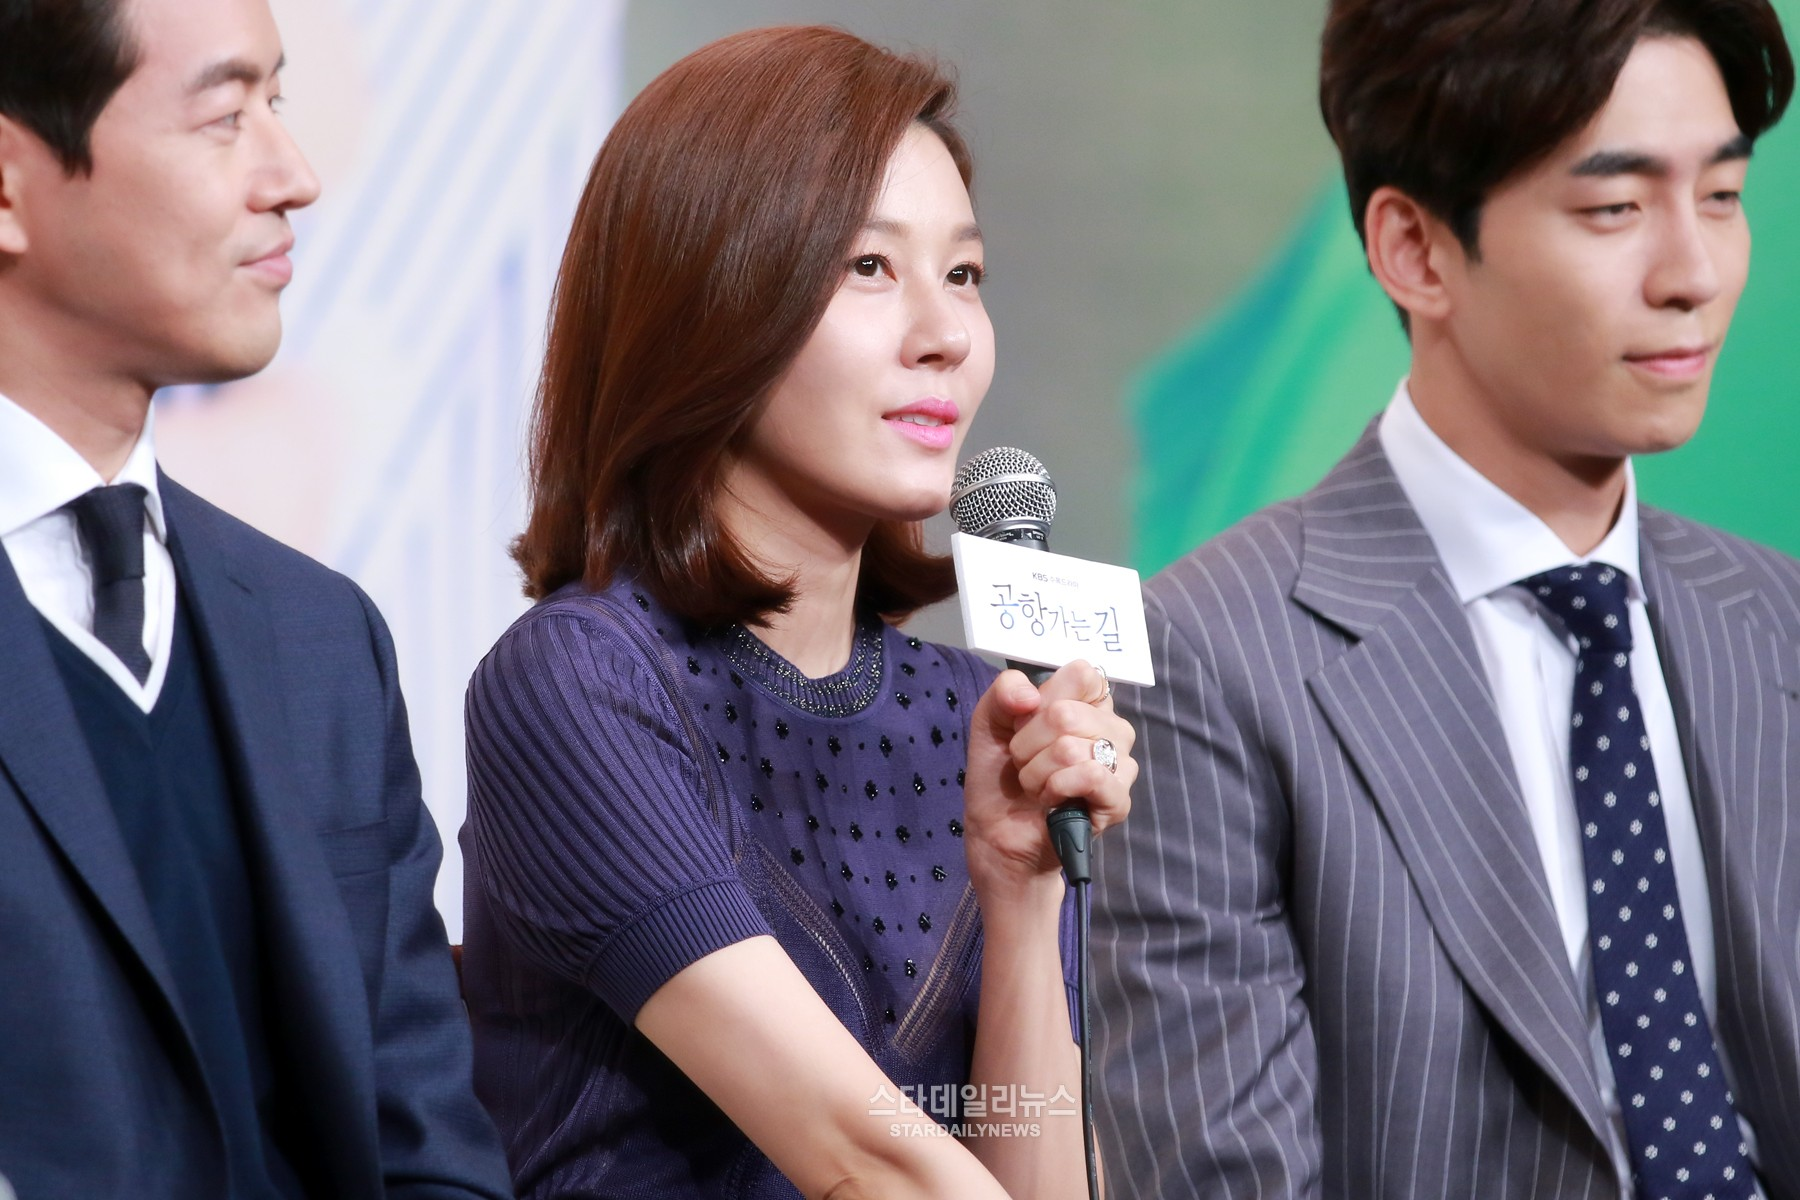 """Kim Ha Neul Makes Ratings Promise To Dance To TWICE's """"Cheer Up"""""""